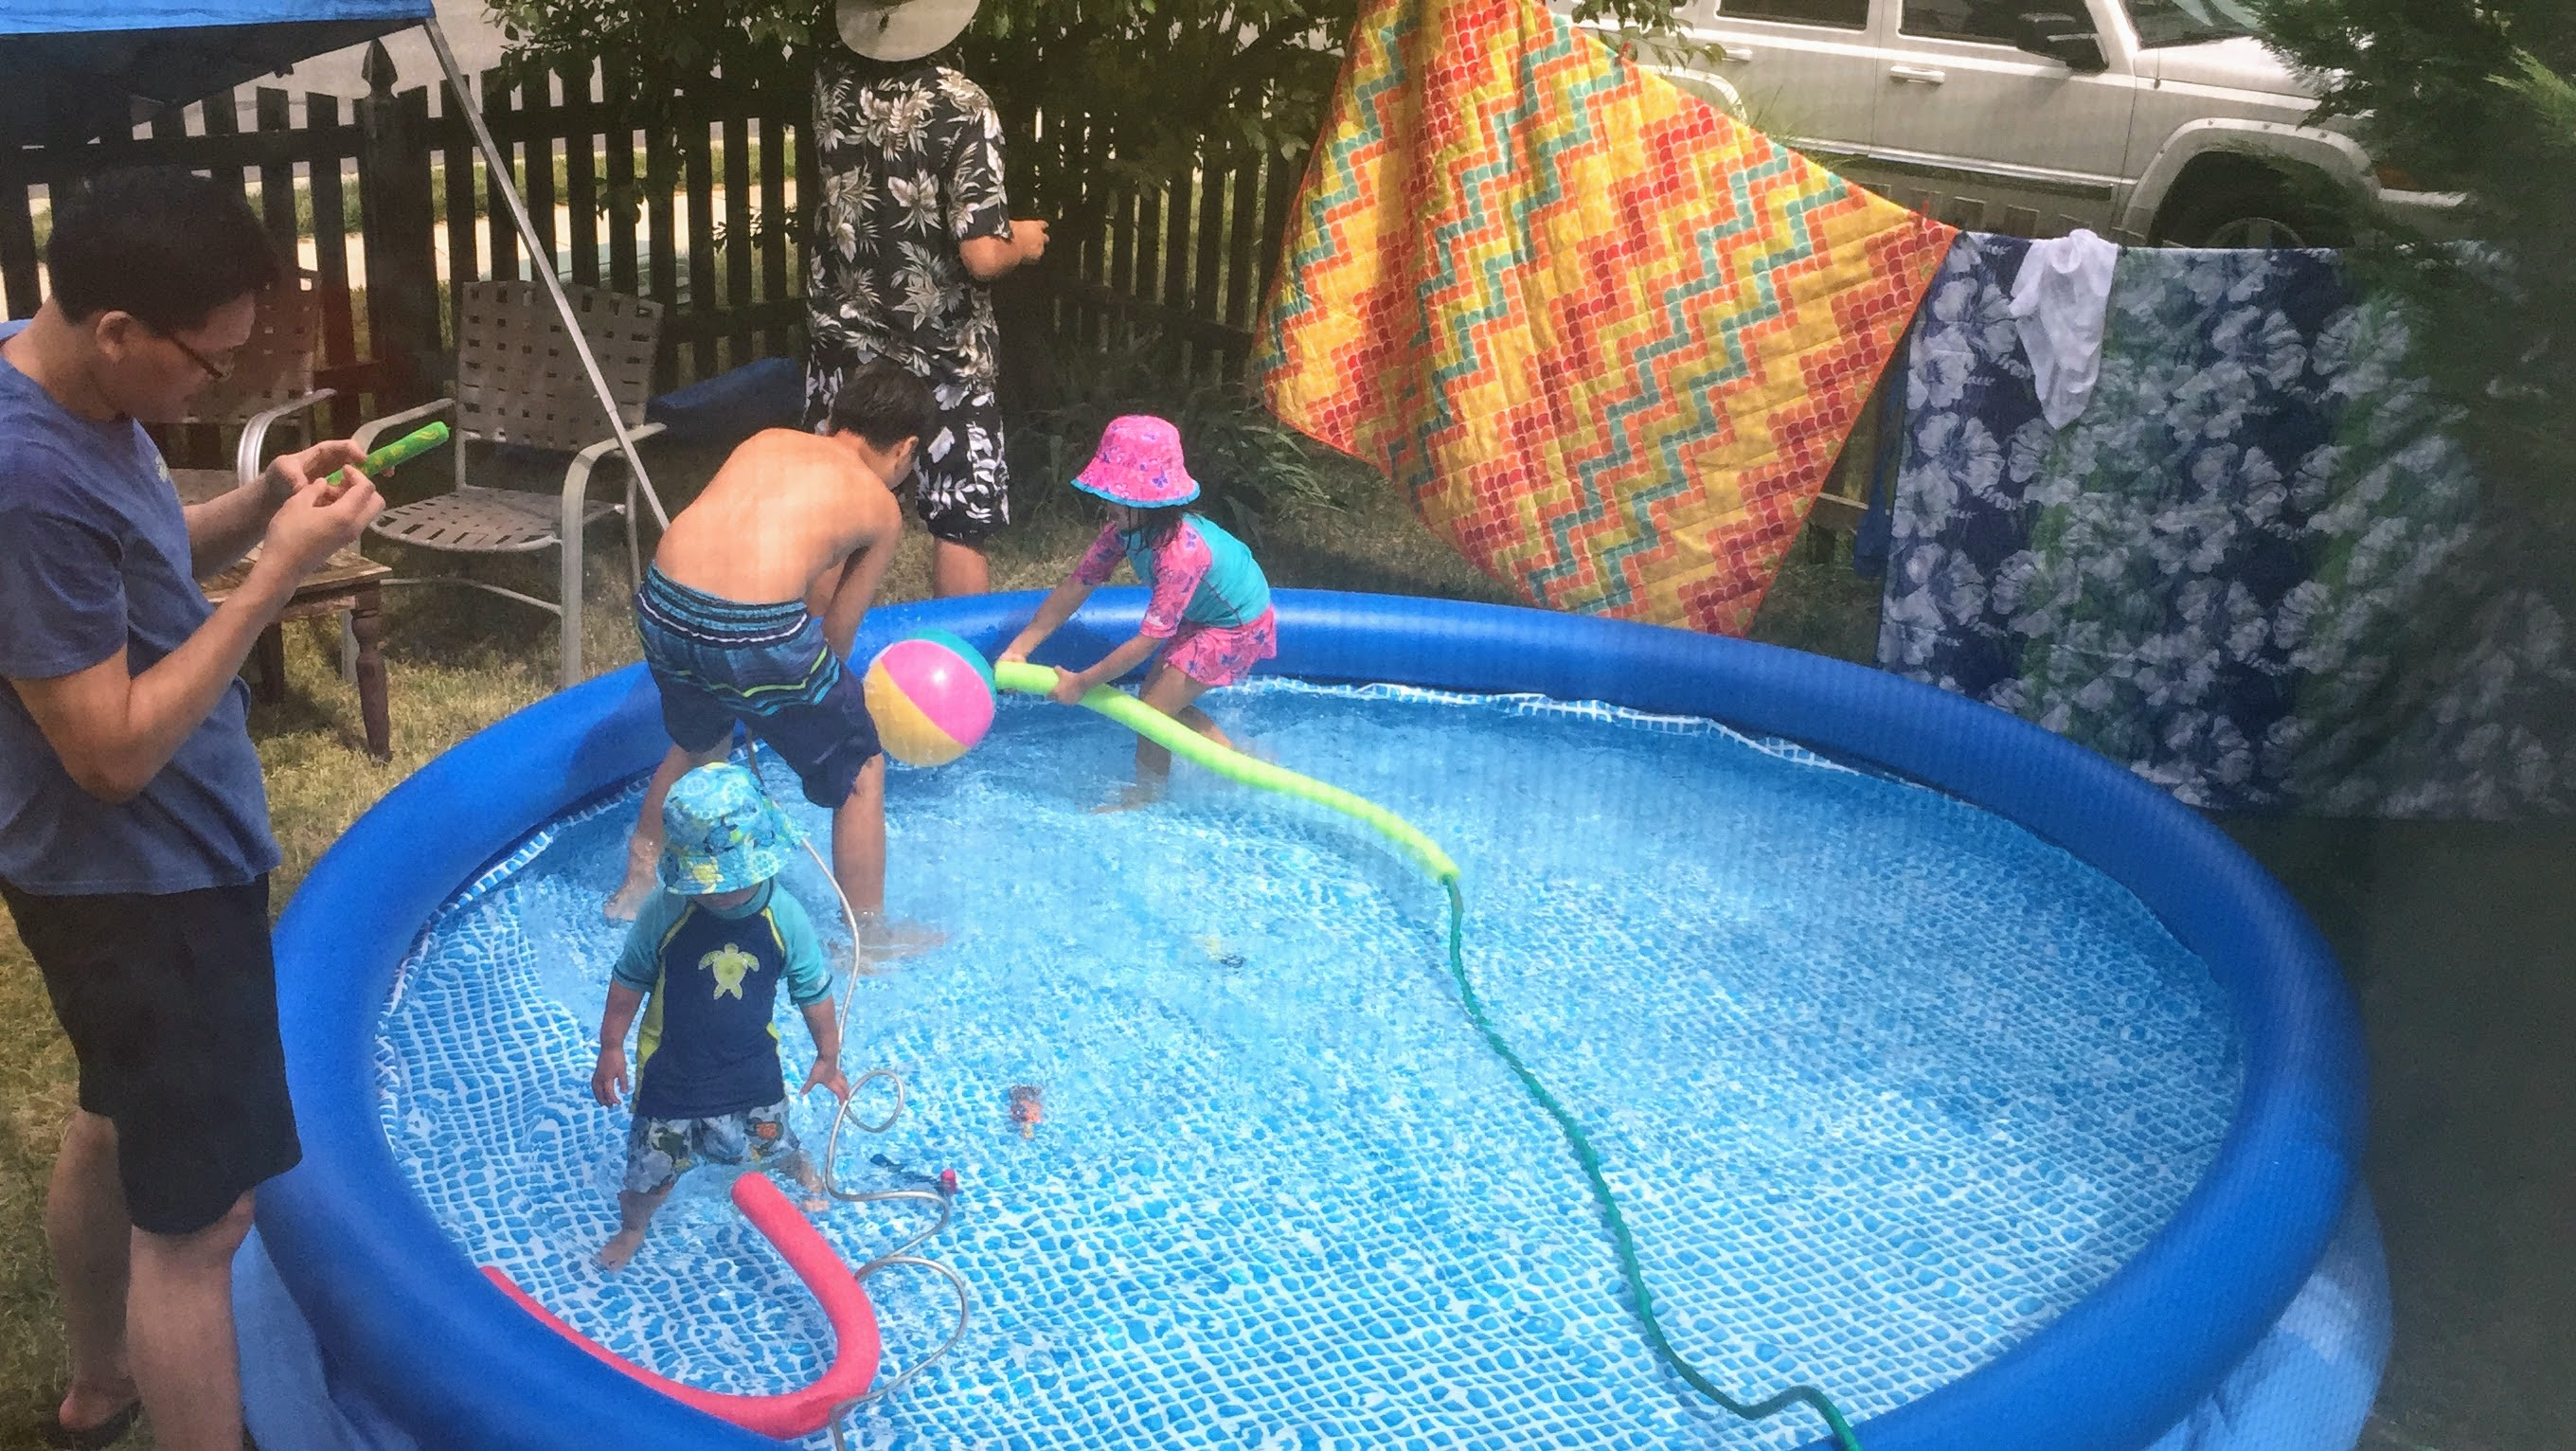 Math HappeningsPool party!   Math Happenings on